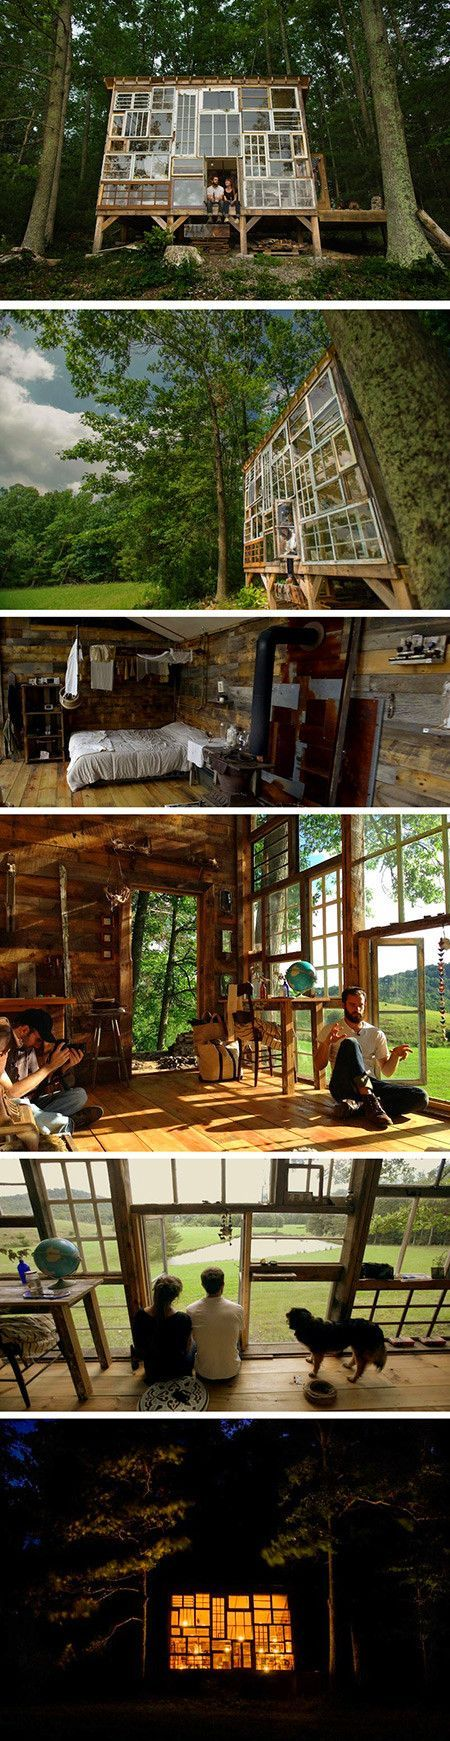 $500 House Built From Discarded Windows